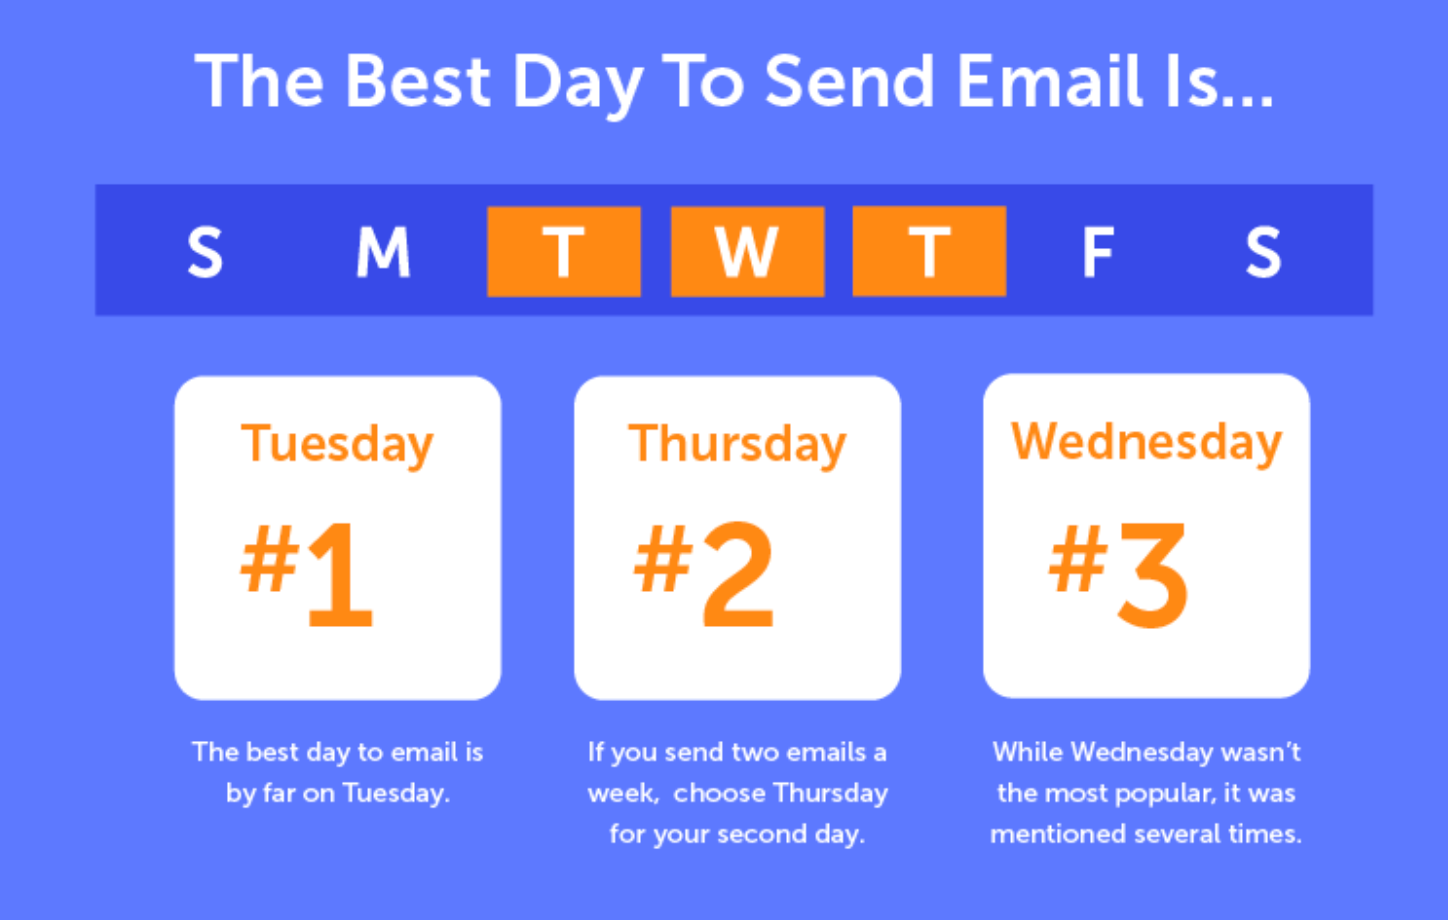 sales tips - best day to send email